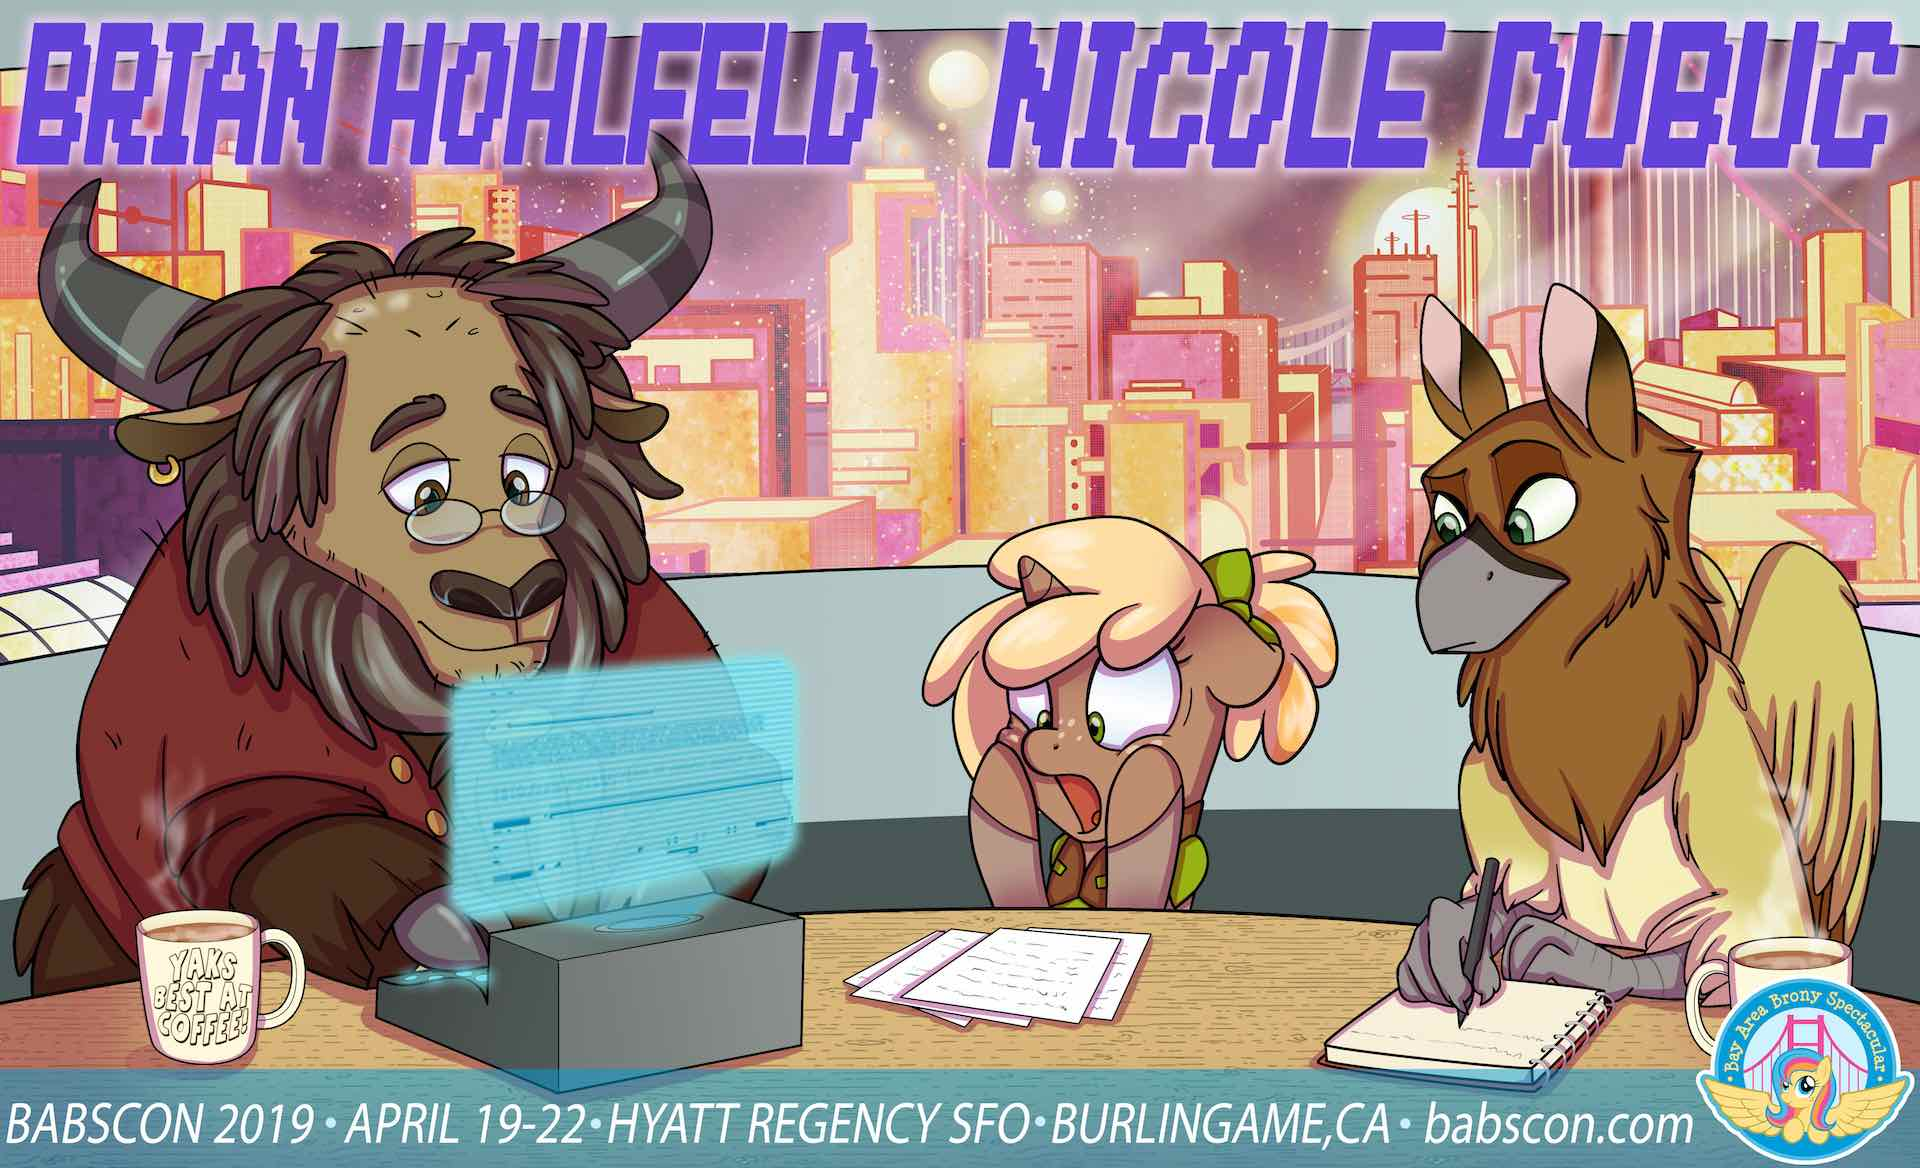 BABSCon Writes Its Own Ticket With Nicole Dubuc & Brian Hohlfeld